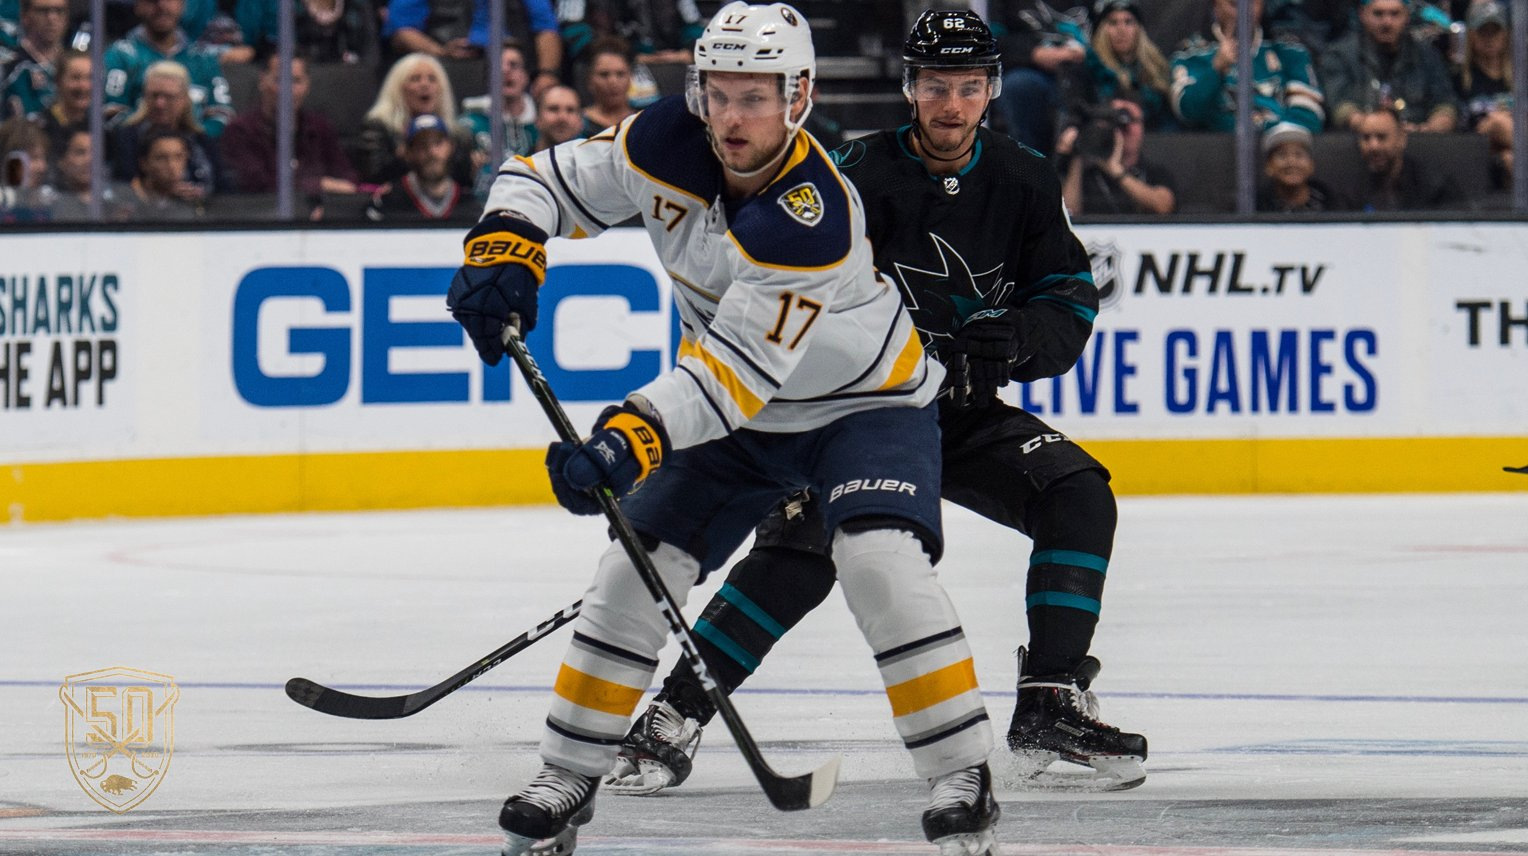 Sabres defeat Sharks, 4-3